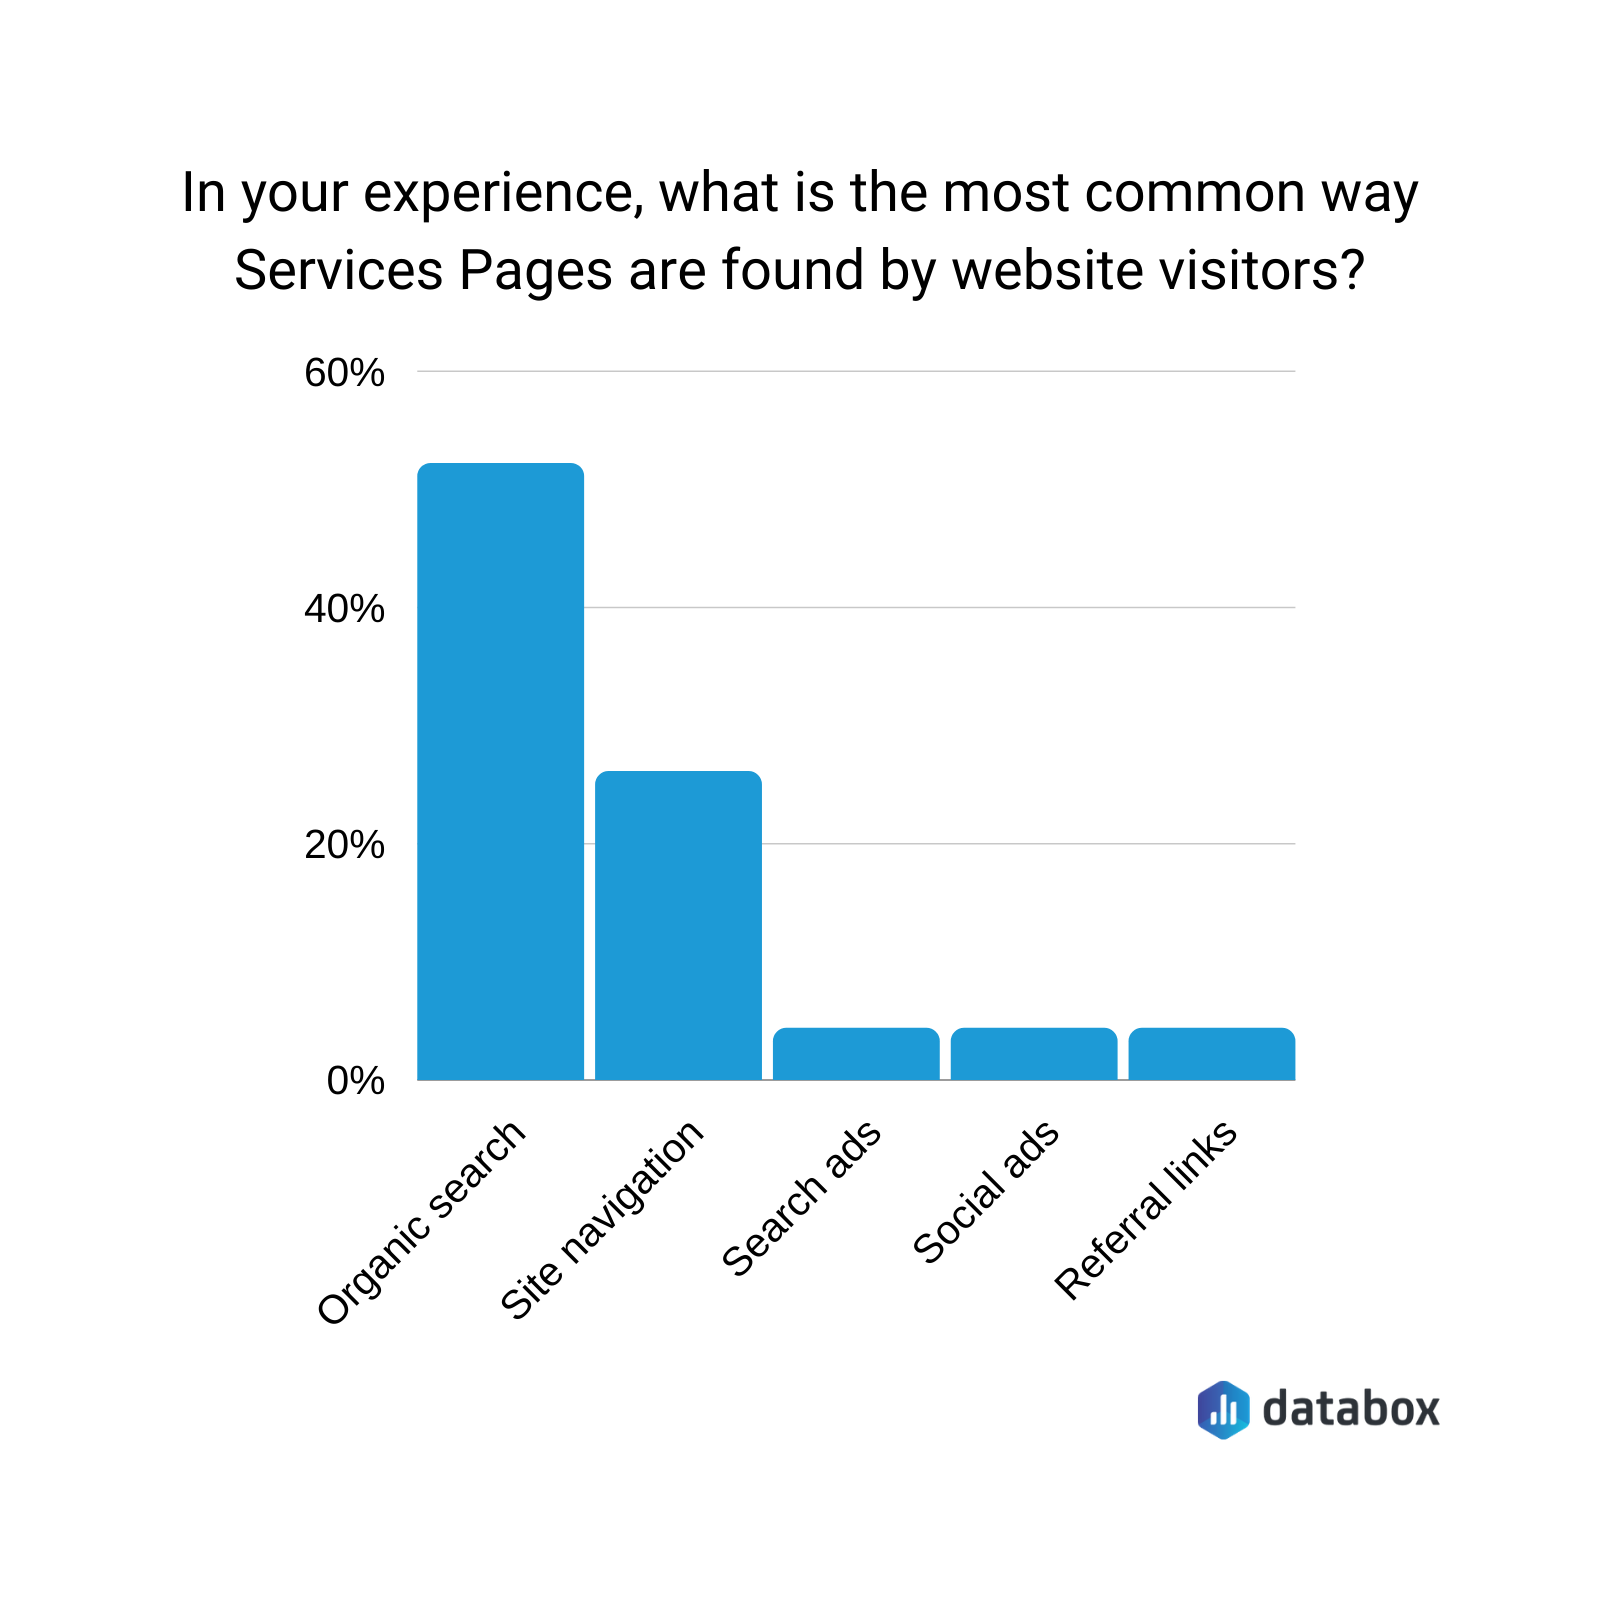 most common way service pages are found